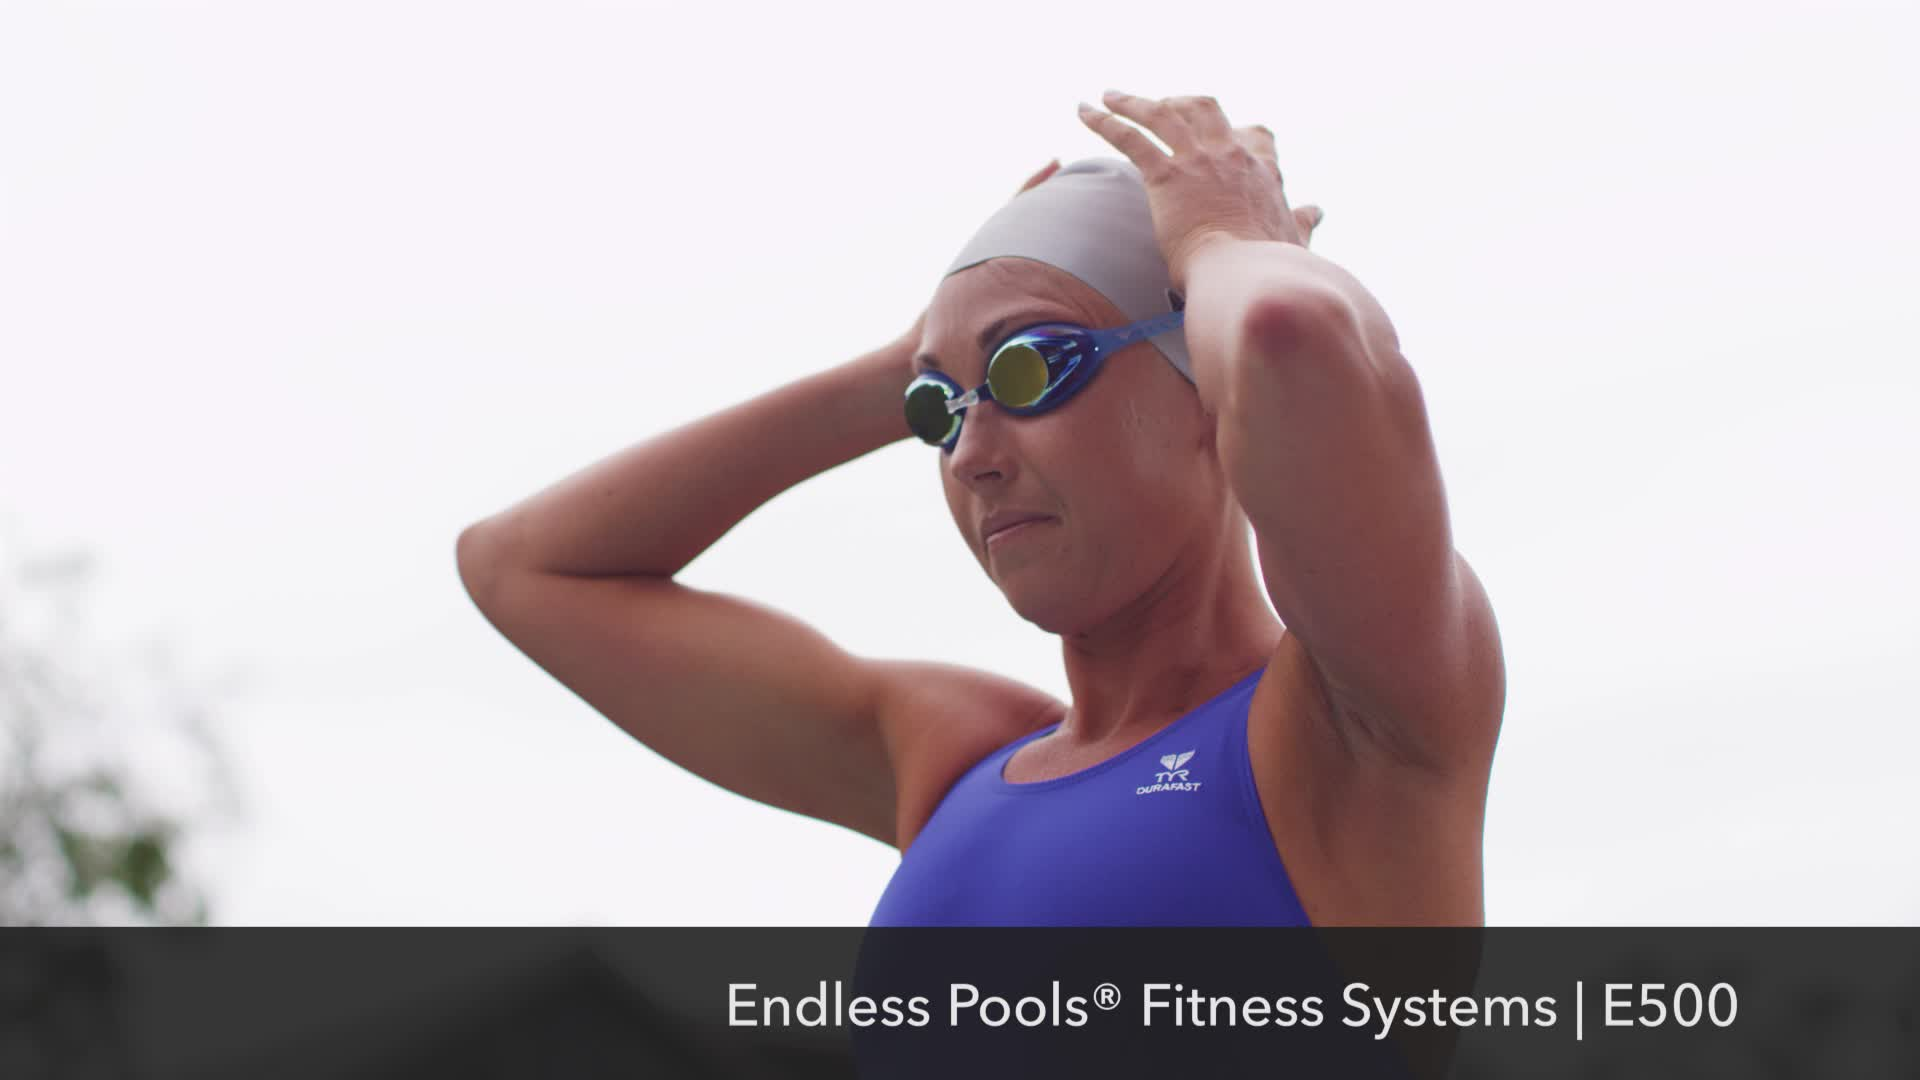 The incredible Endless Pools® Fitness Systems E500 is the perfect backyard addition where you can swim, run, walk and exercise all in one place, all within the comfort of water's buoyancy and on your schedule. Check out the E500 and how it can truly improve your day with its unlimited possibilities.